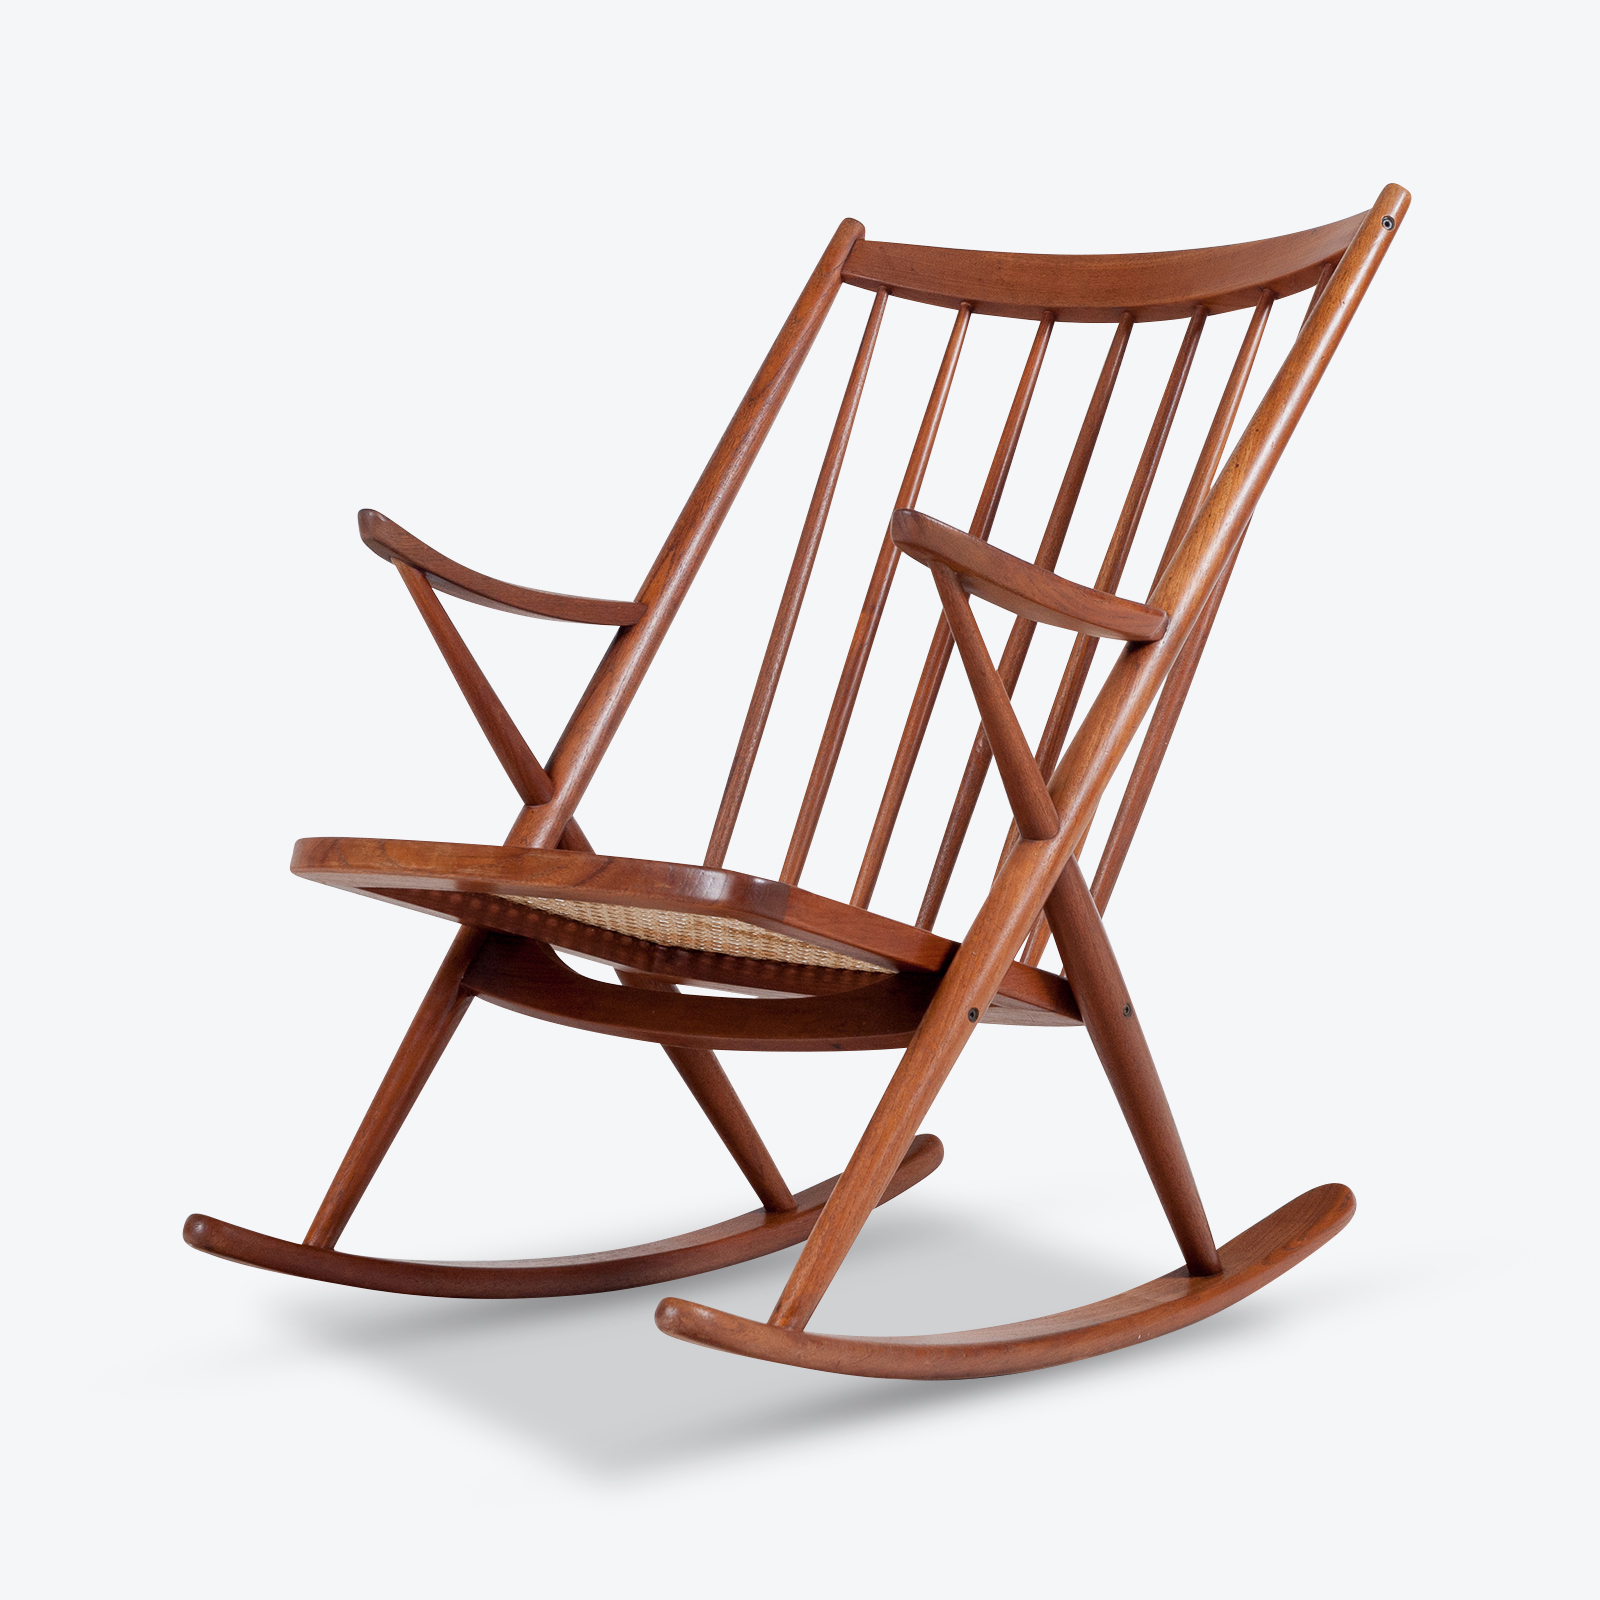 Rocking-Chair-by-Frank-Reenskaug-in-Teak-for-  sc 1 st  Modern Times : rocking folding chair - lorbestier.org